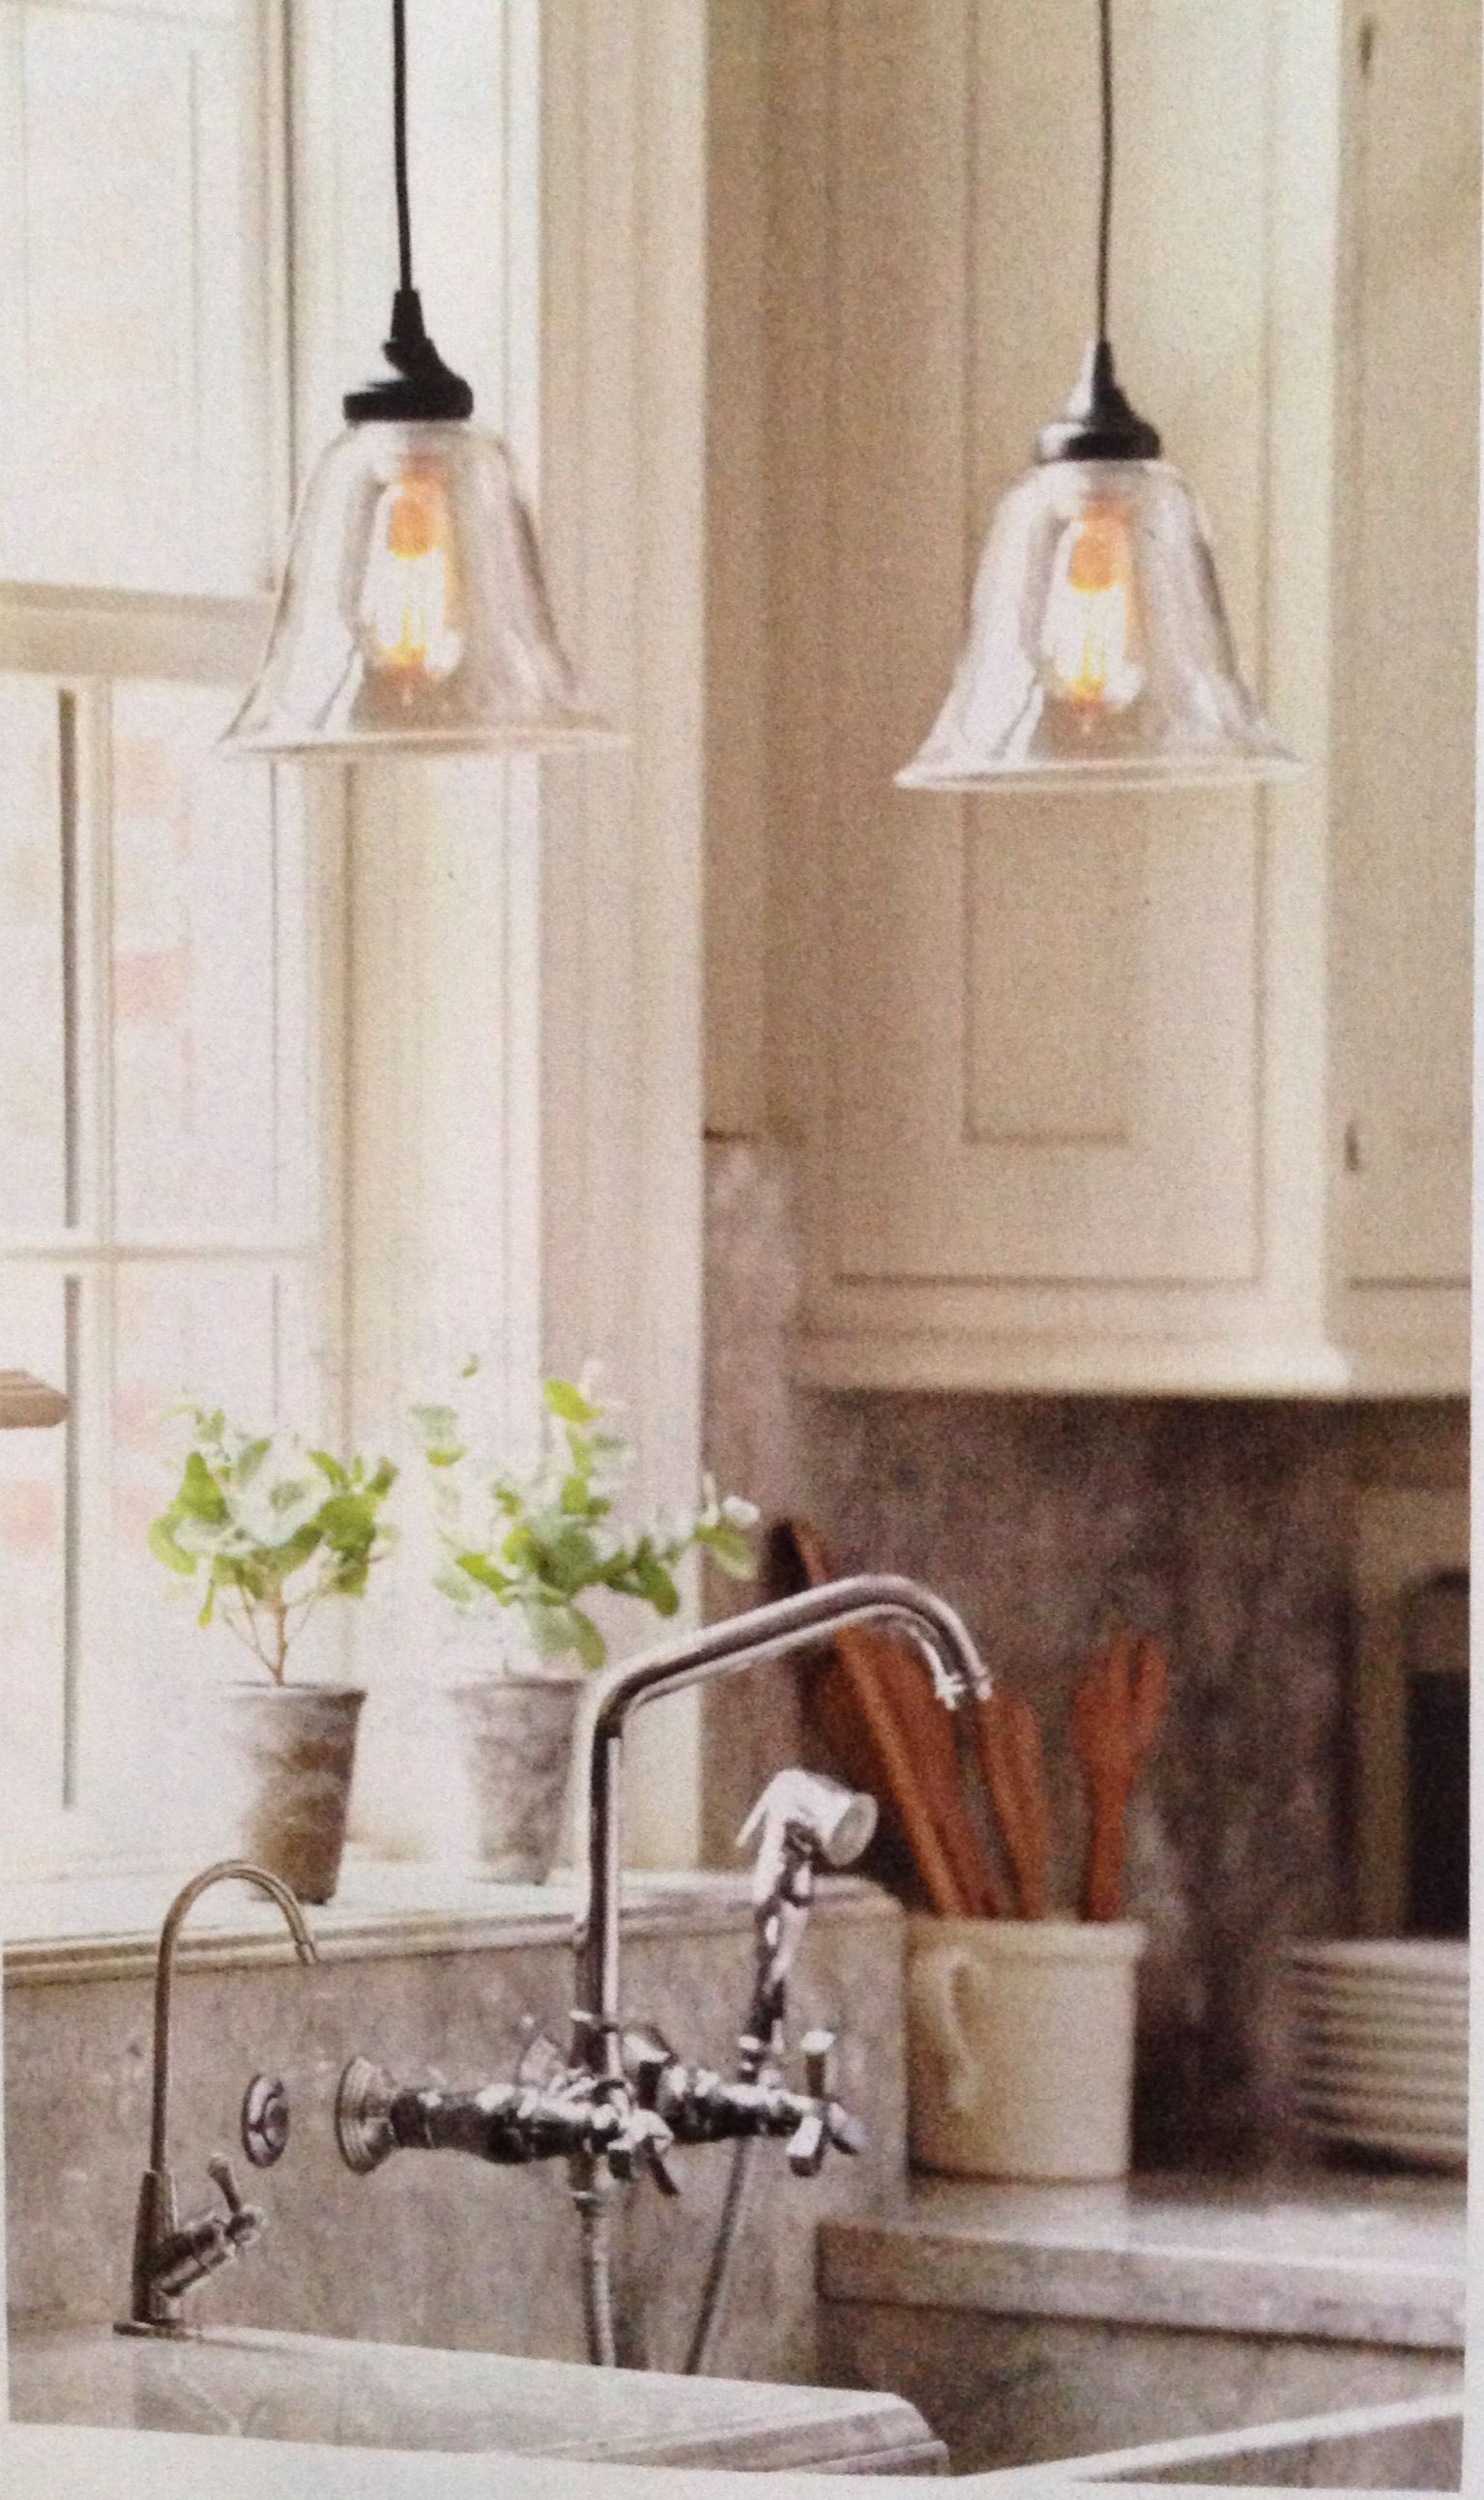 Kitchen sink bella casa pinterest kitchen sink and kitchen